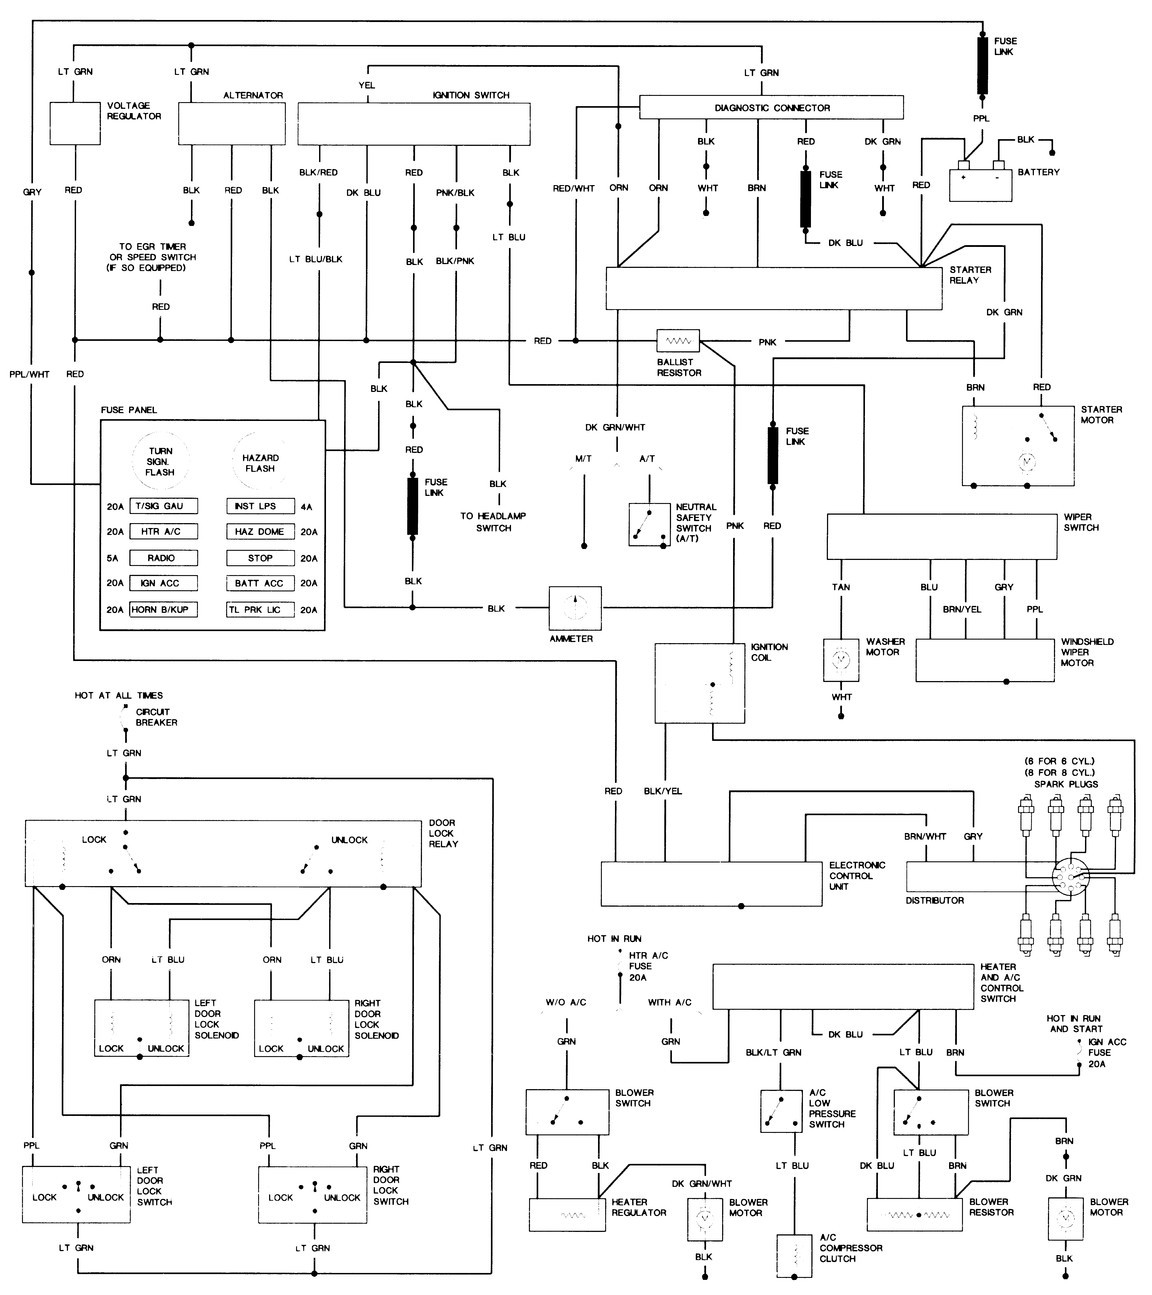 [WRG-1299] 1979 Plymouth Wiring Diagram